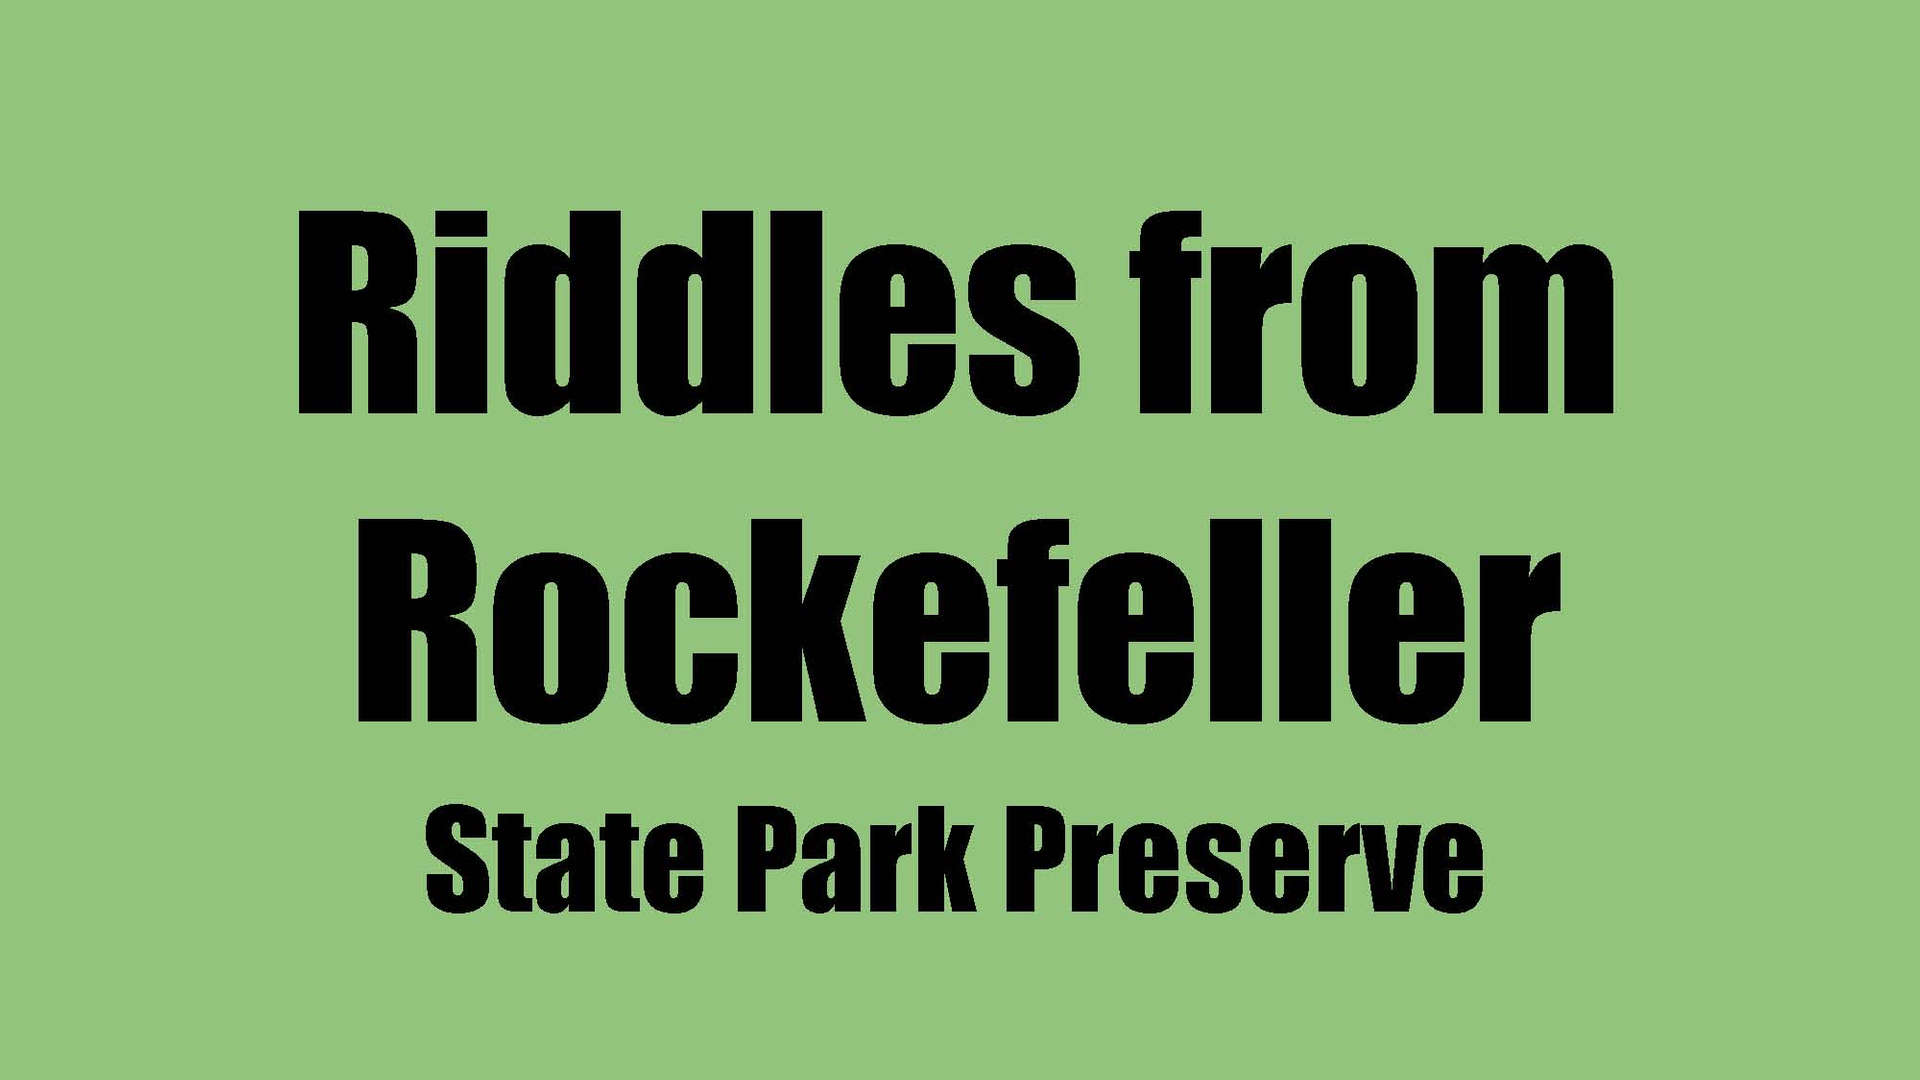 Riddles From Rockefeller